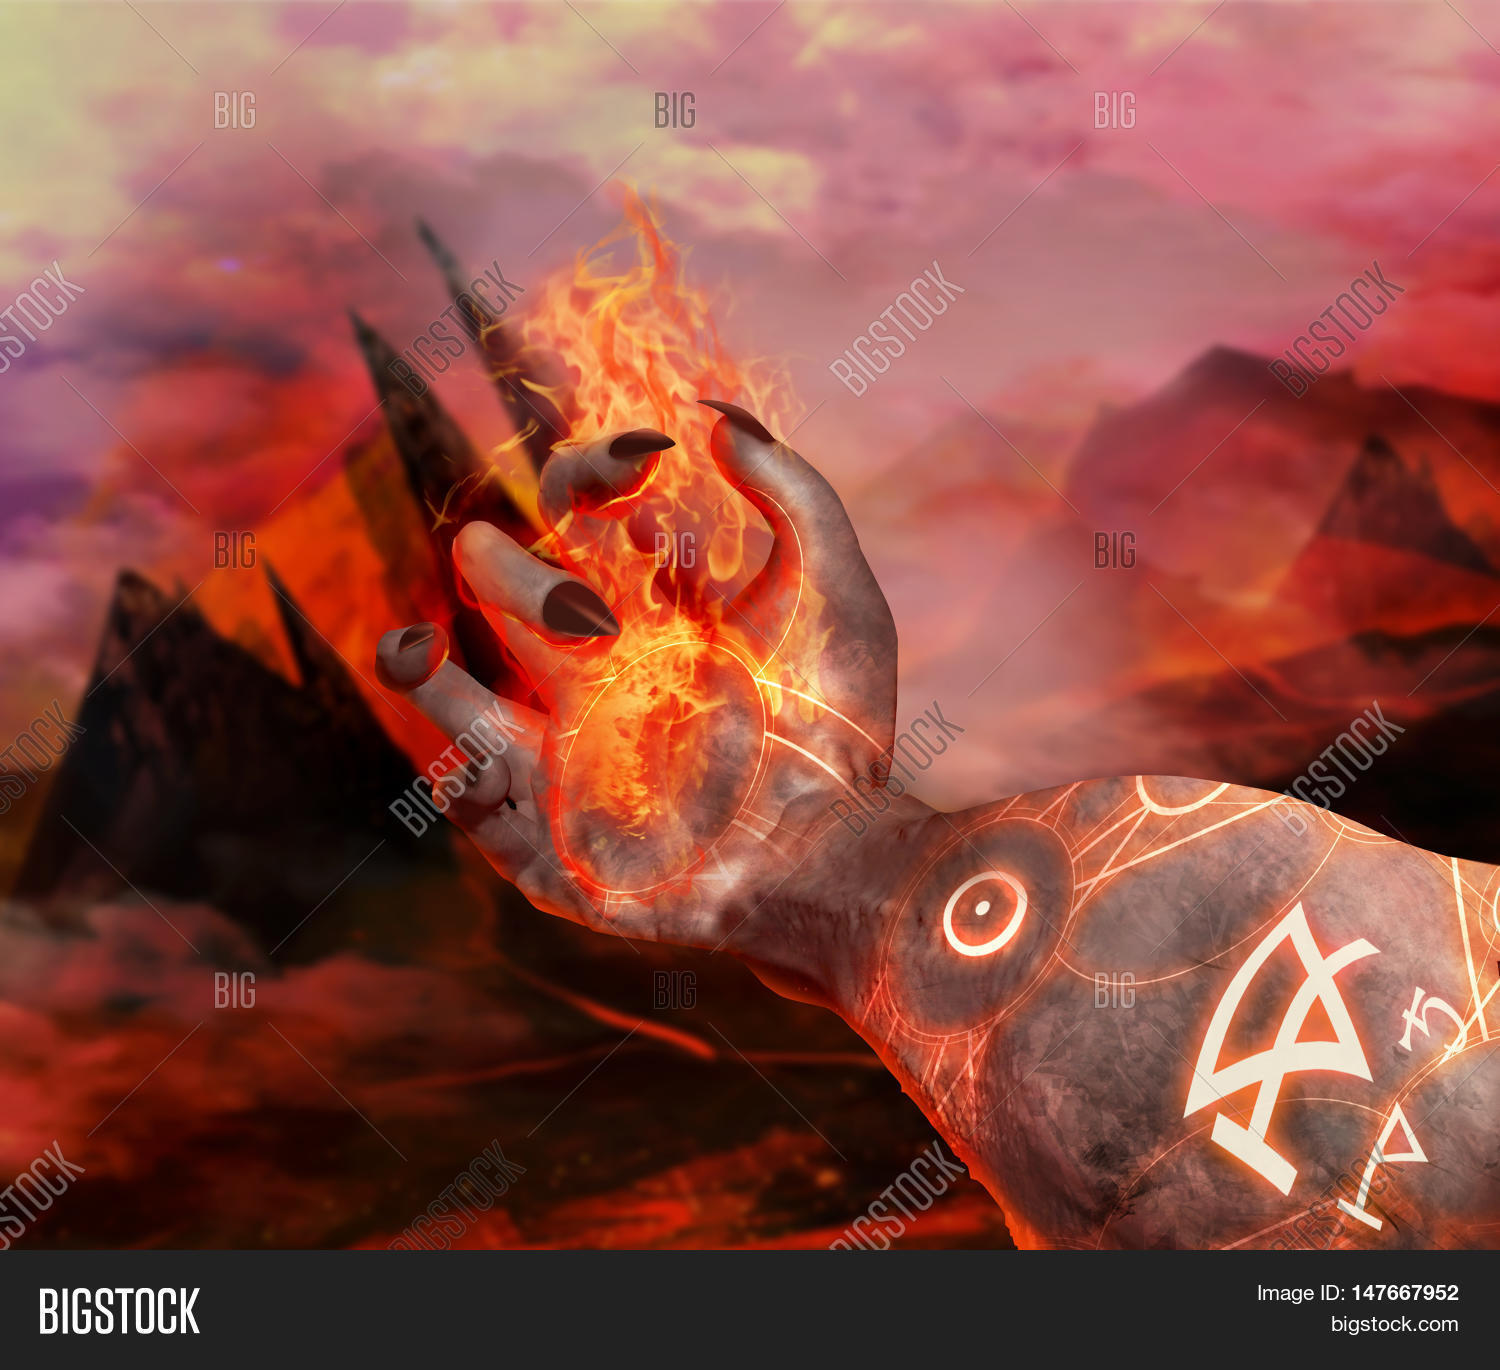 3D Illustration Of A Demonic Hand Holding Fire 3d First Person View With